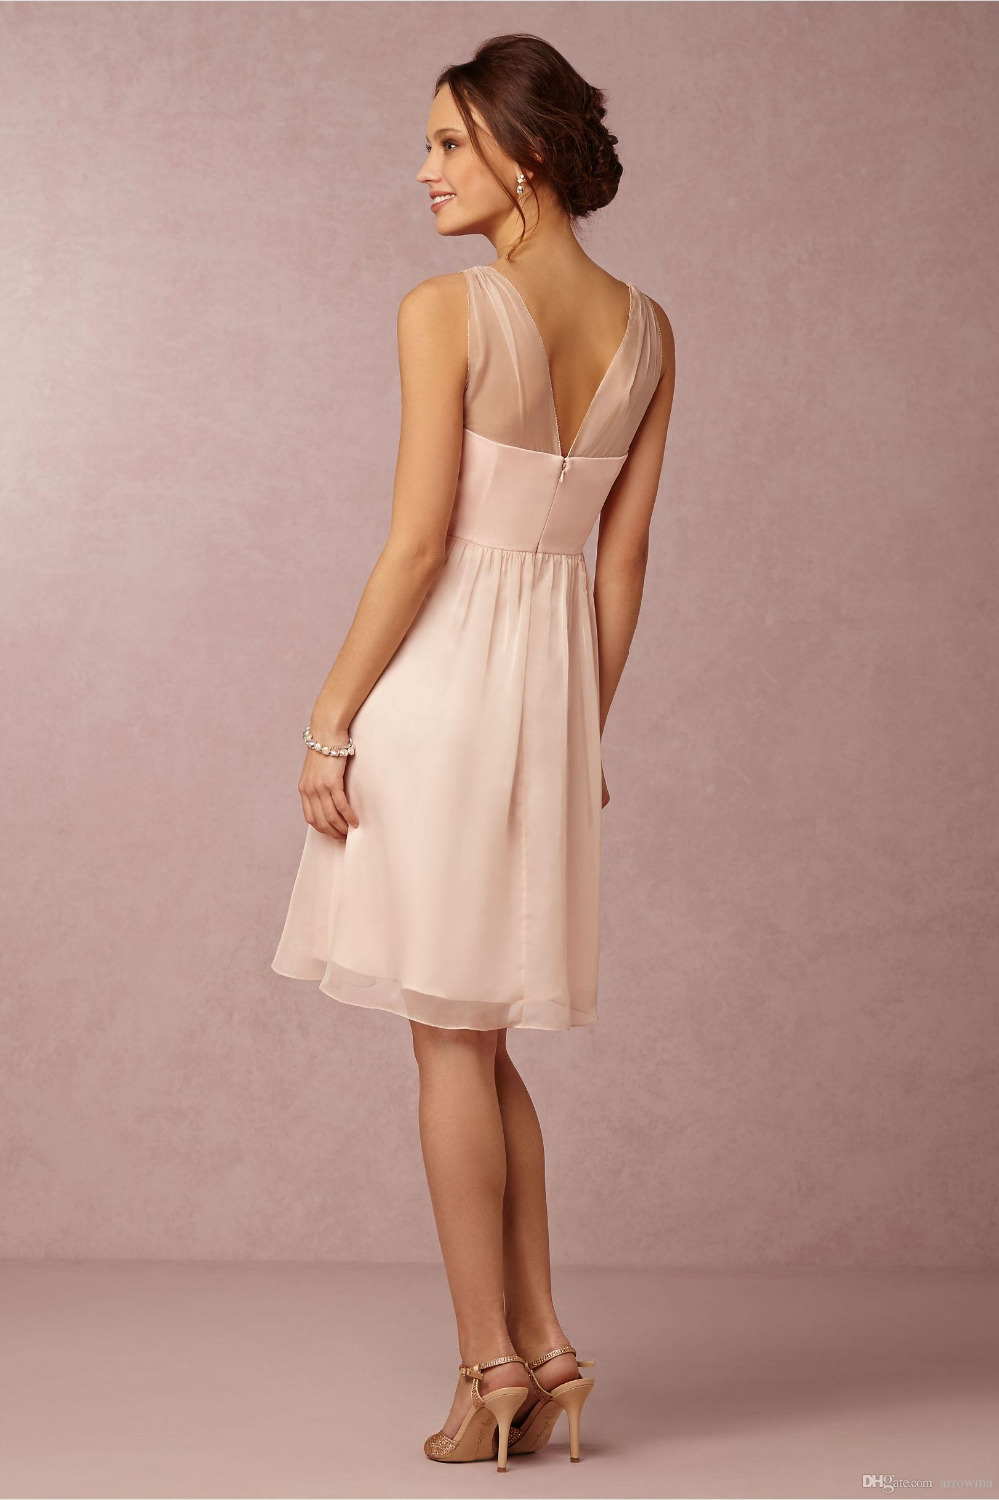 Cheap blush pink short bridesmaid dresses a line chiffon junior cheap blush pink short bridesmaid dresses a line chiffon junior bridesmaid gowns v neck tank sleeveless backless zipper sexy in bridesmaid dresses from ombrellifo Choice Image